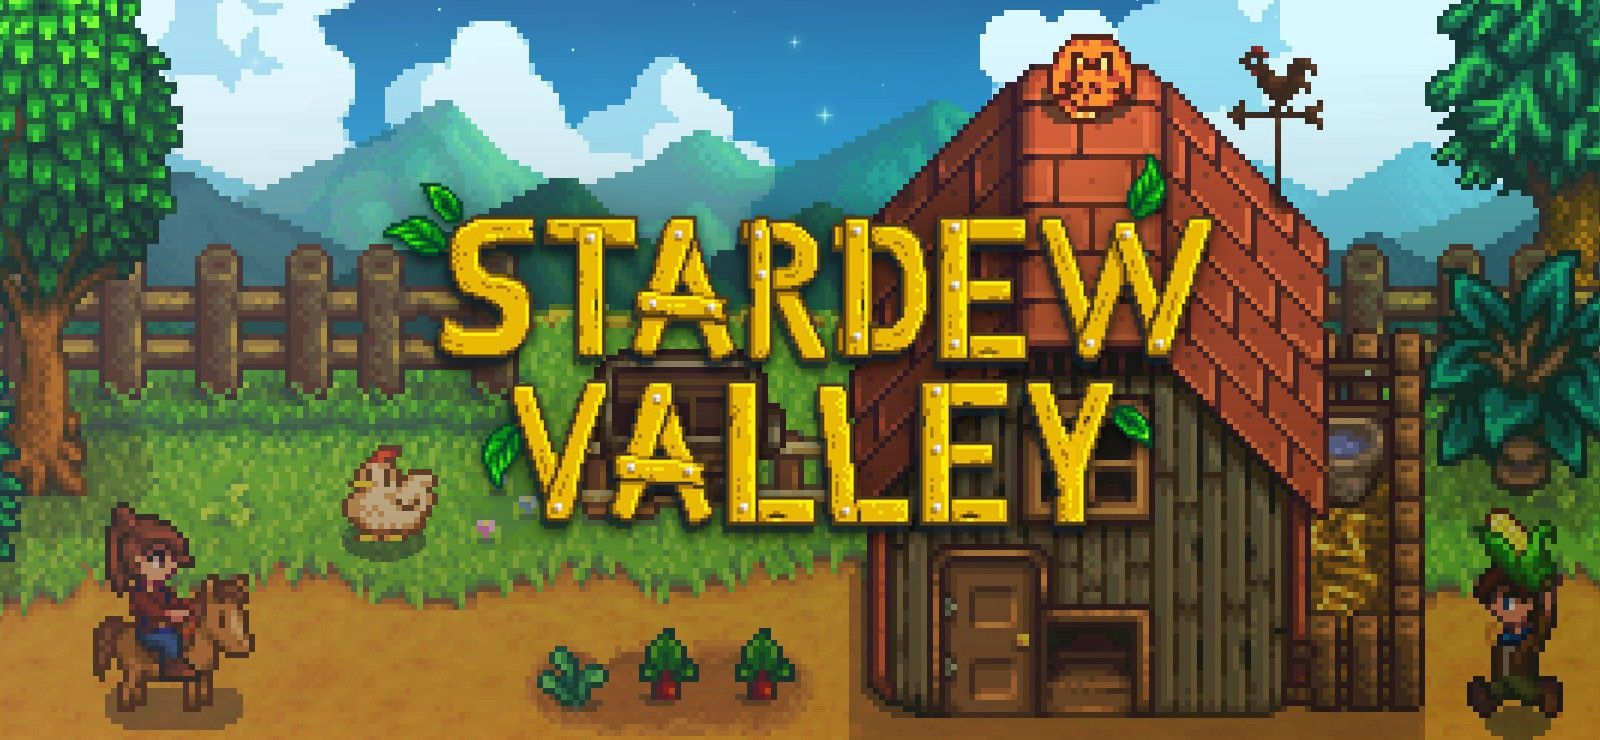 Stardew Valley Mobile Passed $1 Million in Revenue